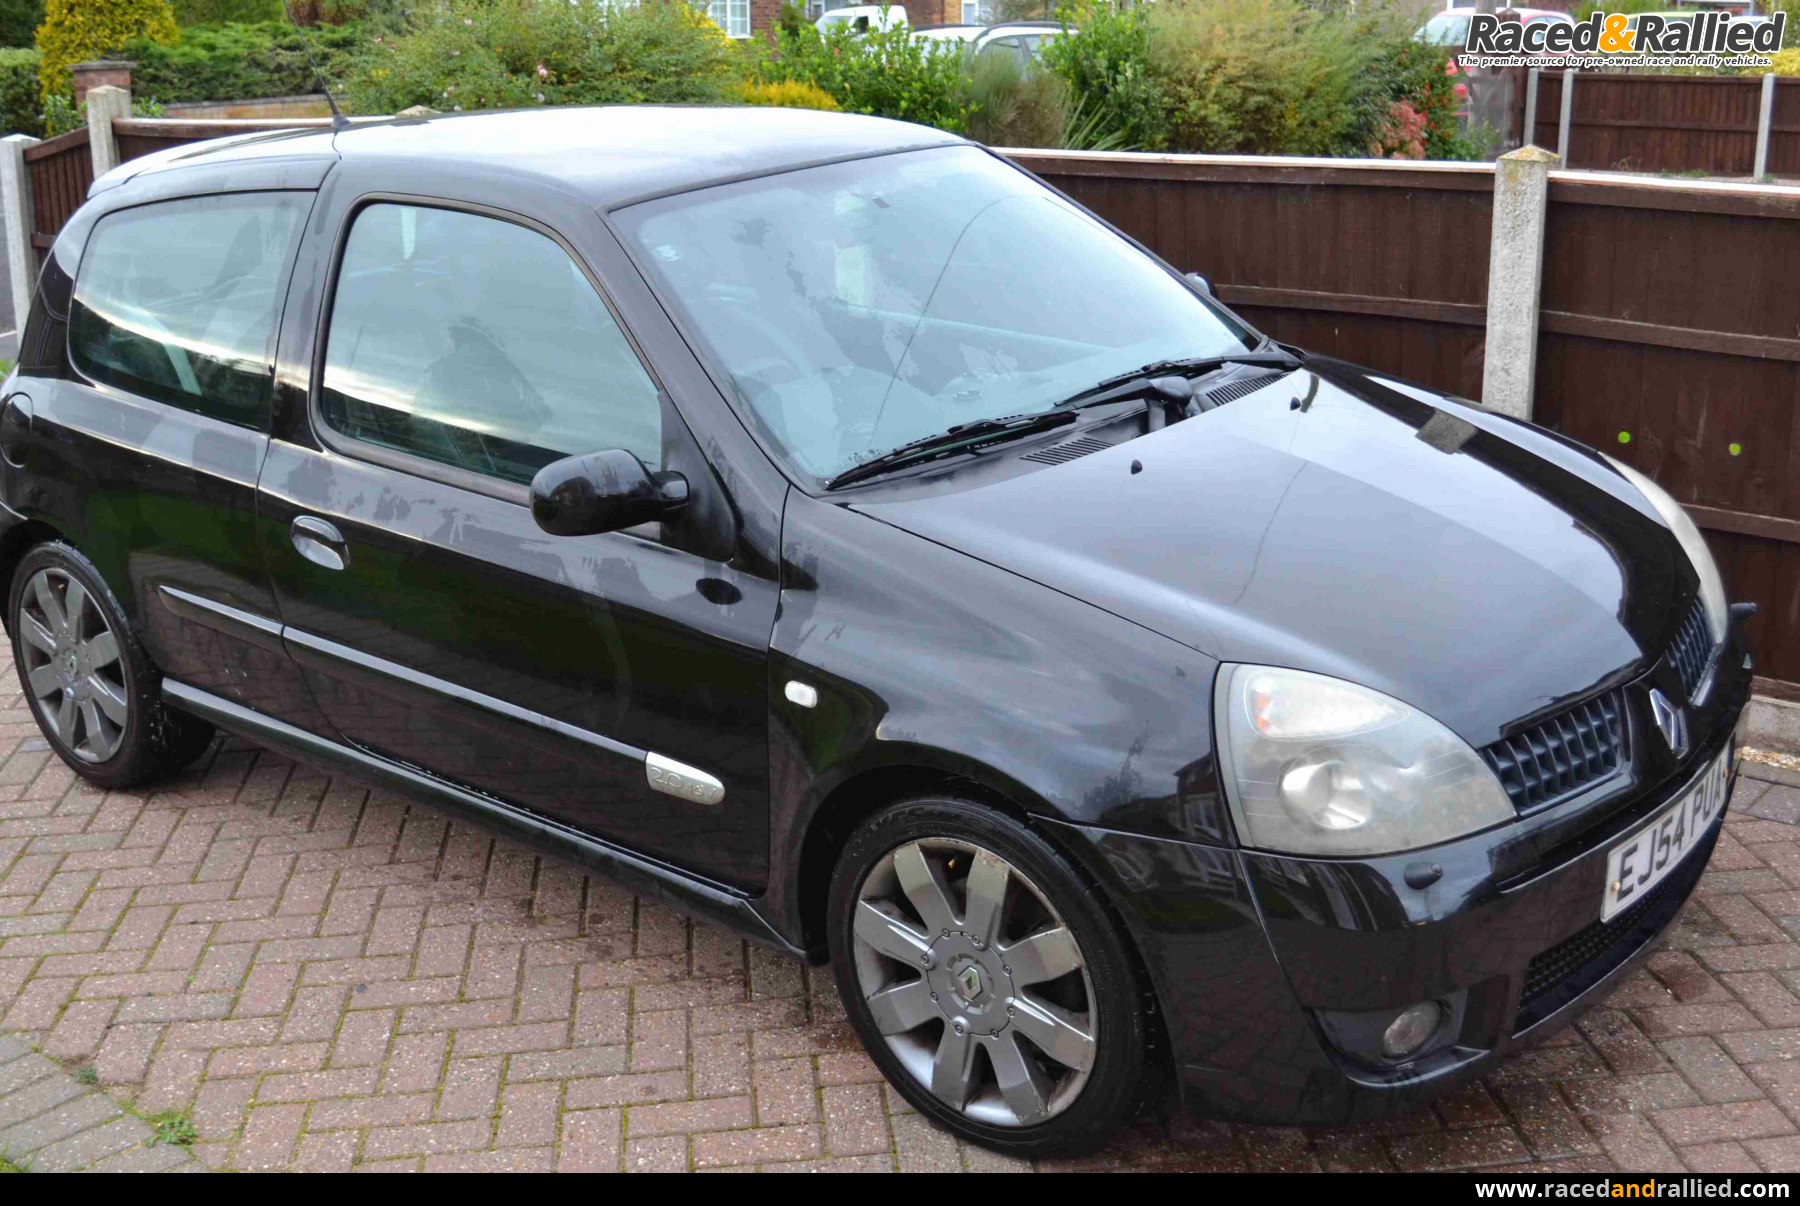 Renault Clio 182 Sport 2004 Black 127k Miles Mot Nov 18 Race Rally Cars Free Classifieds From Raced Rallied